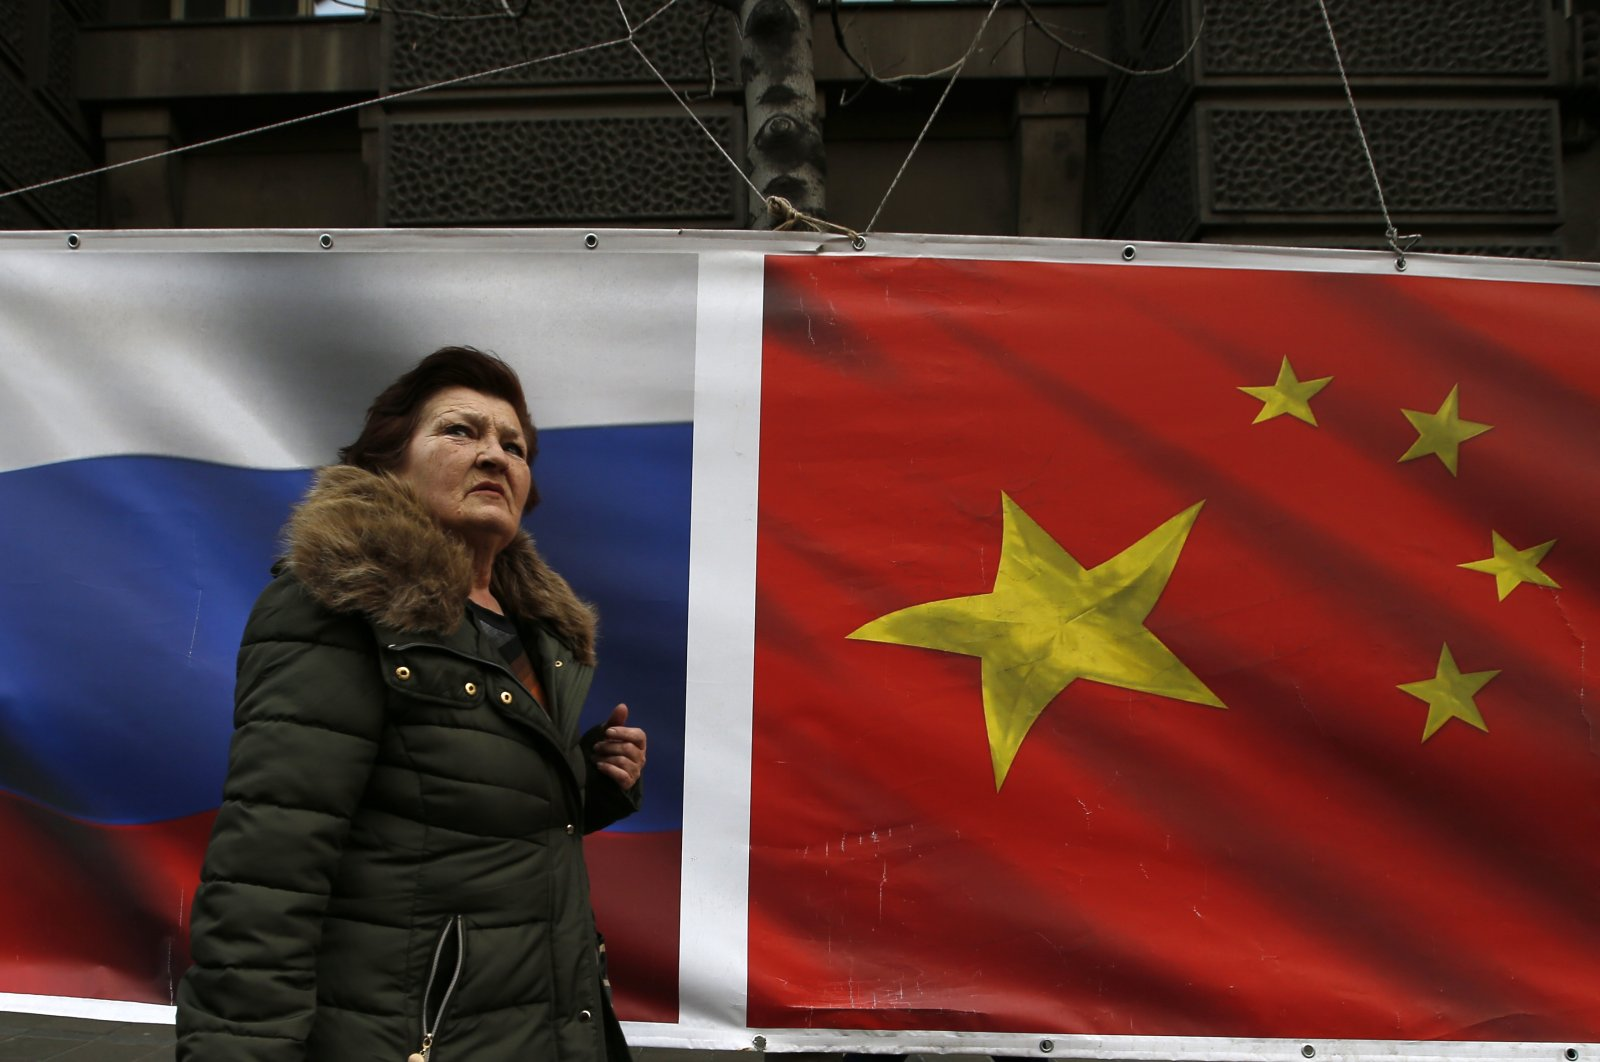 A woman walks by Russian and Chinese flags placed on a street in Belgrade, Serbia, March 1, 2019. (AP Photo)